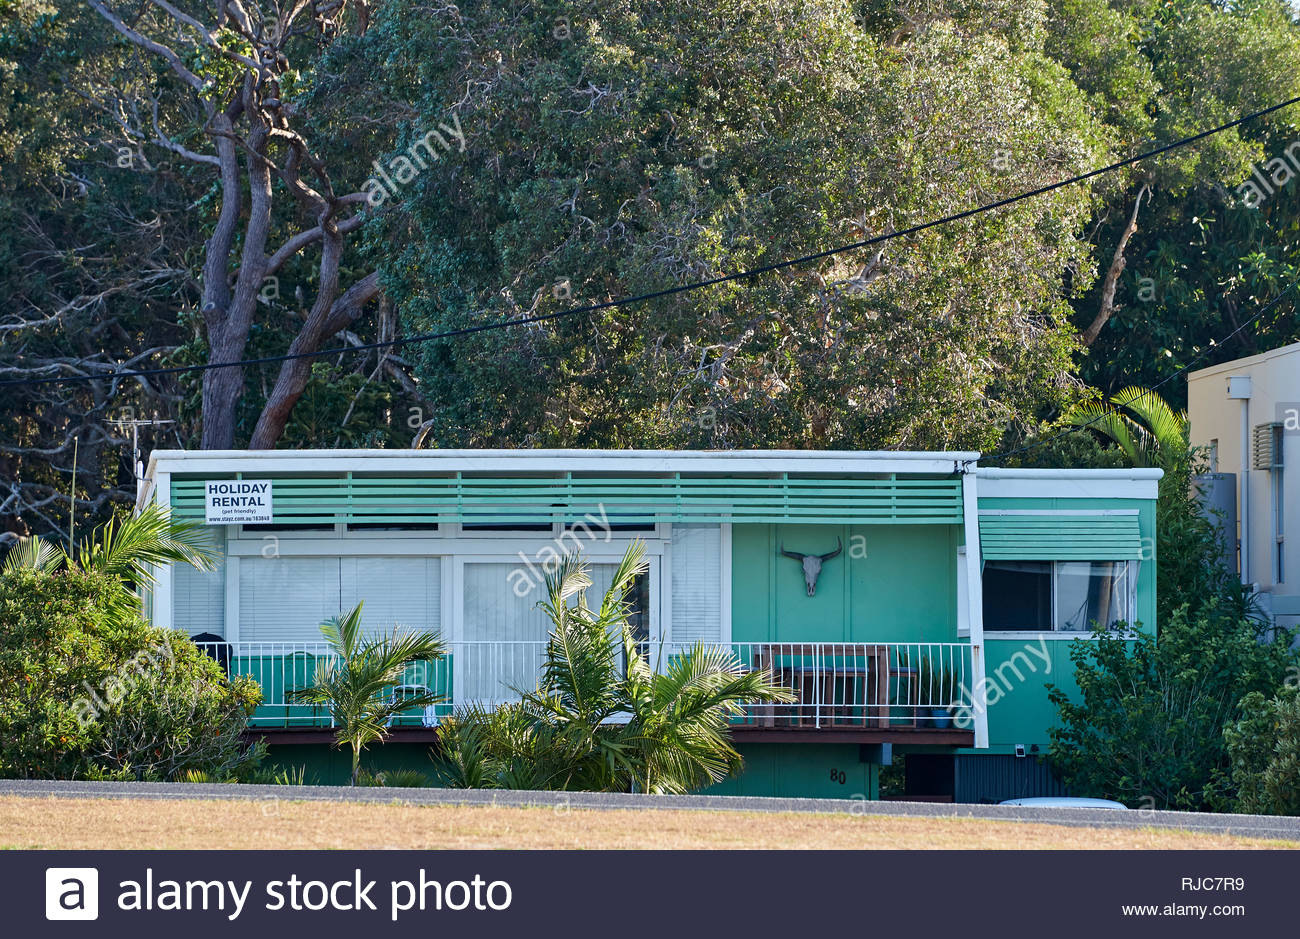 A small - bright green - flat-roofed fibro shack, available for rent during holidays...image taken during a hot summer's day in Yamba, NSW, Australia. - Stock Image